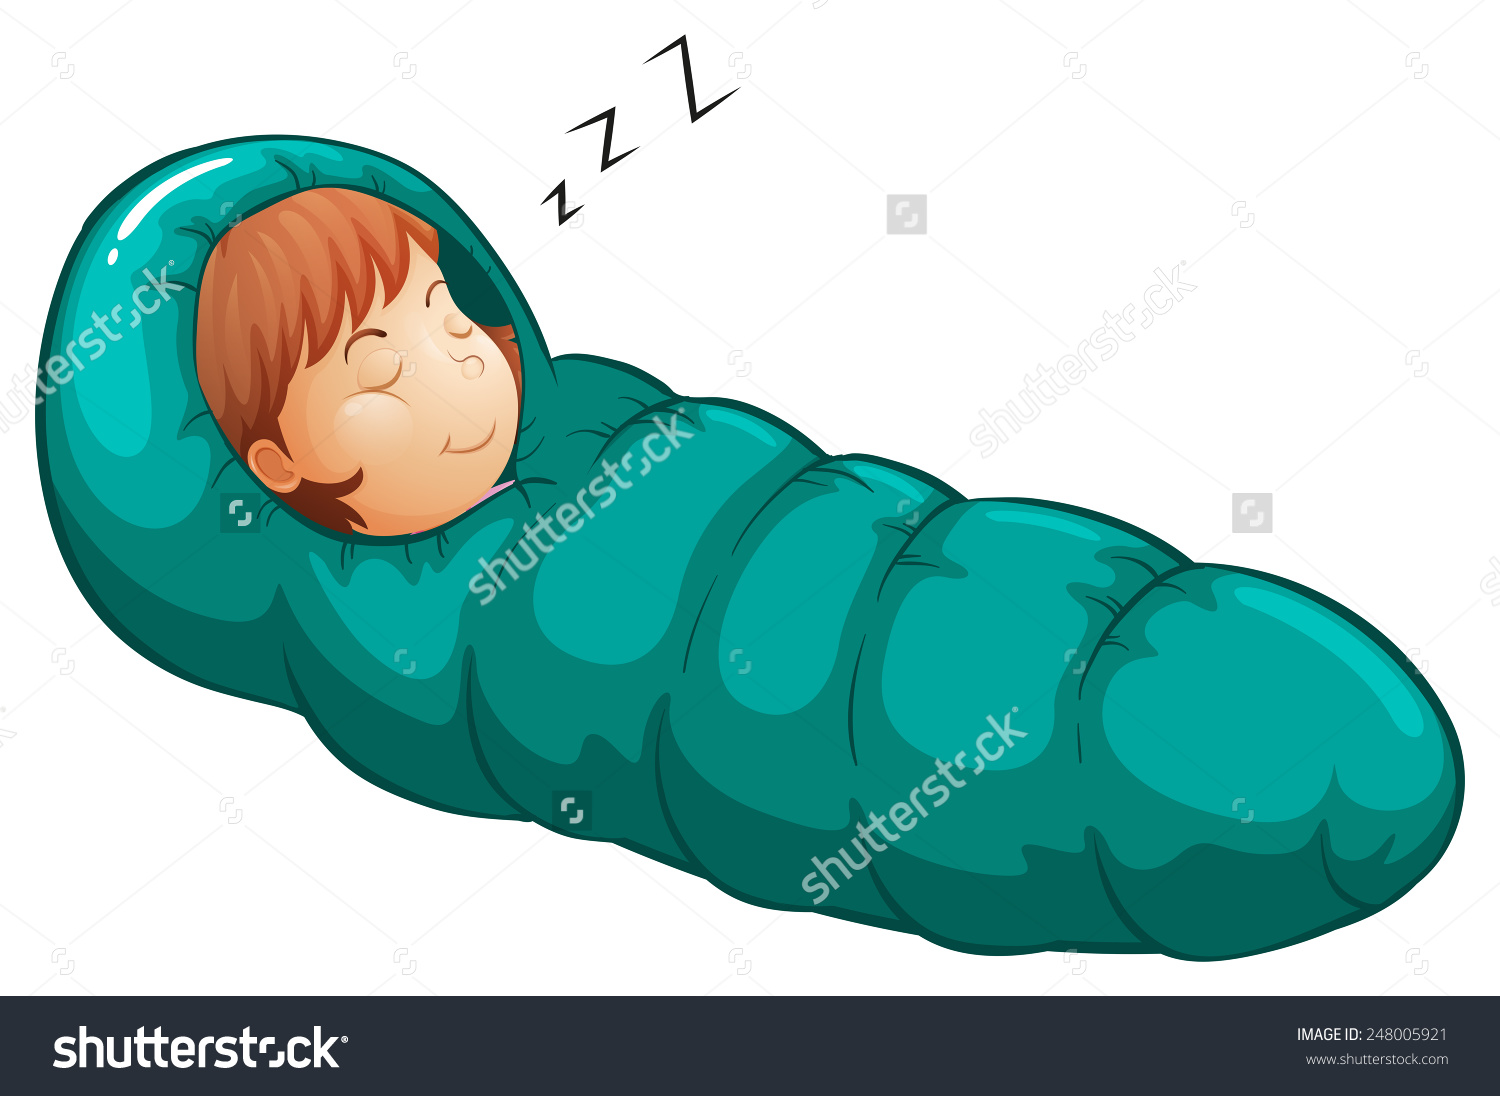 Bag clipart animated. Sleeping free collection download